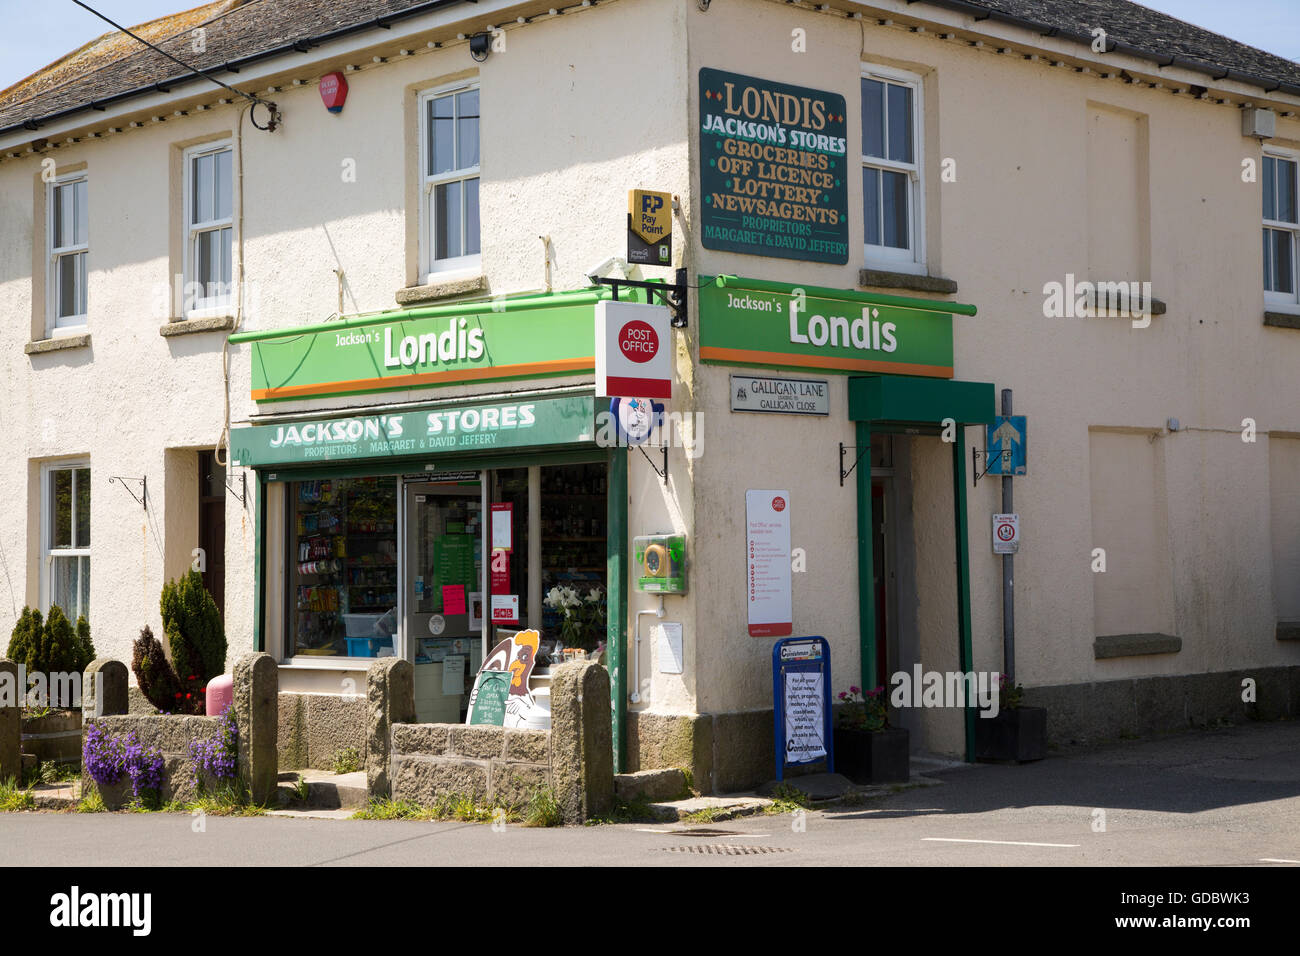 Londis chain village shop, St Buryan, Cornwall, England, UK - Stock Image